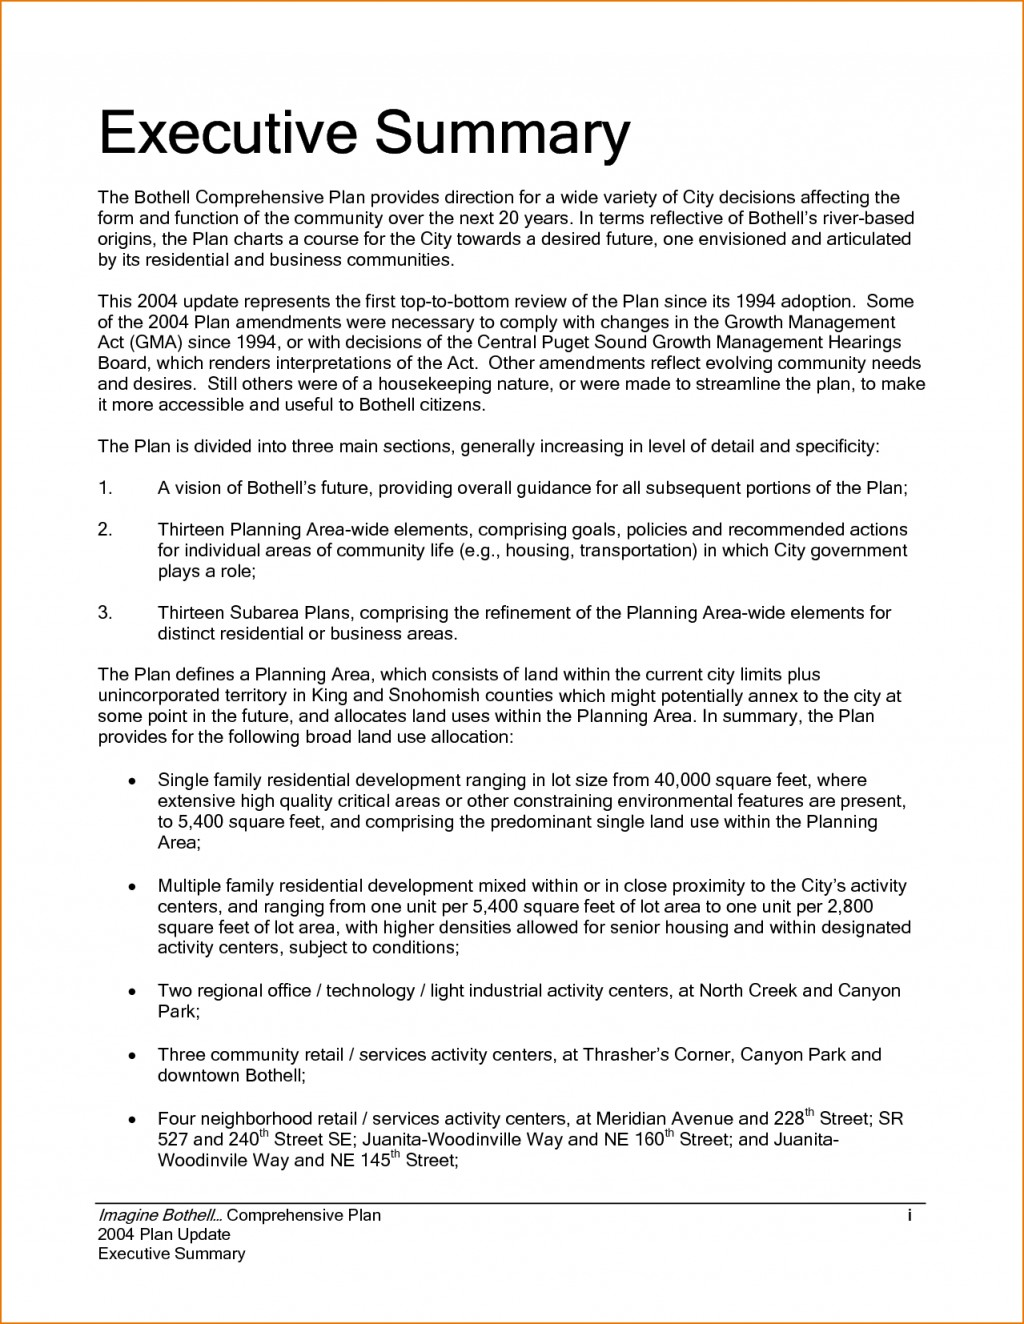 003 Research Paper Executive Summary Unforgettable Example Large